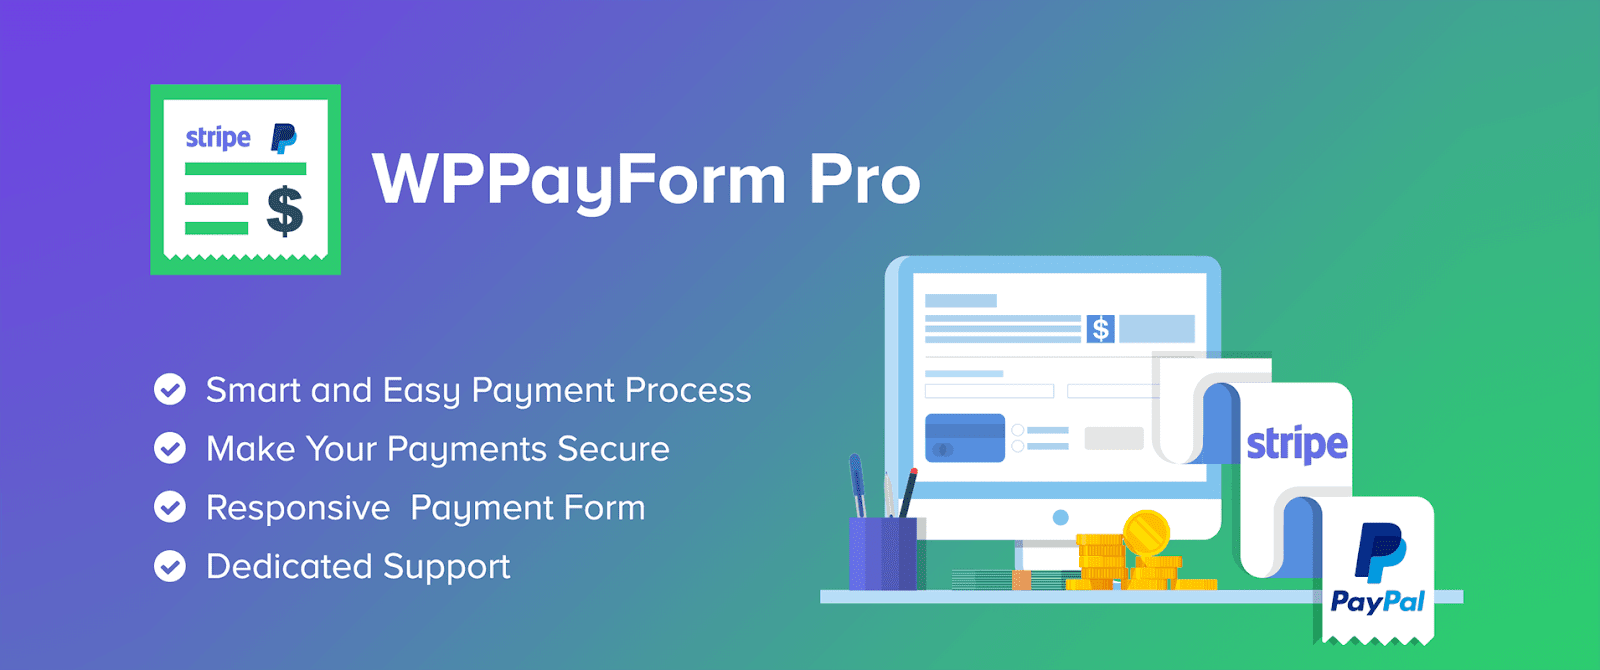 WPPayForm - Payment Form Builder Plugin